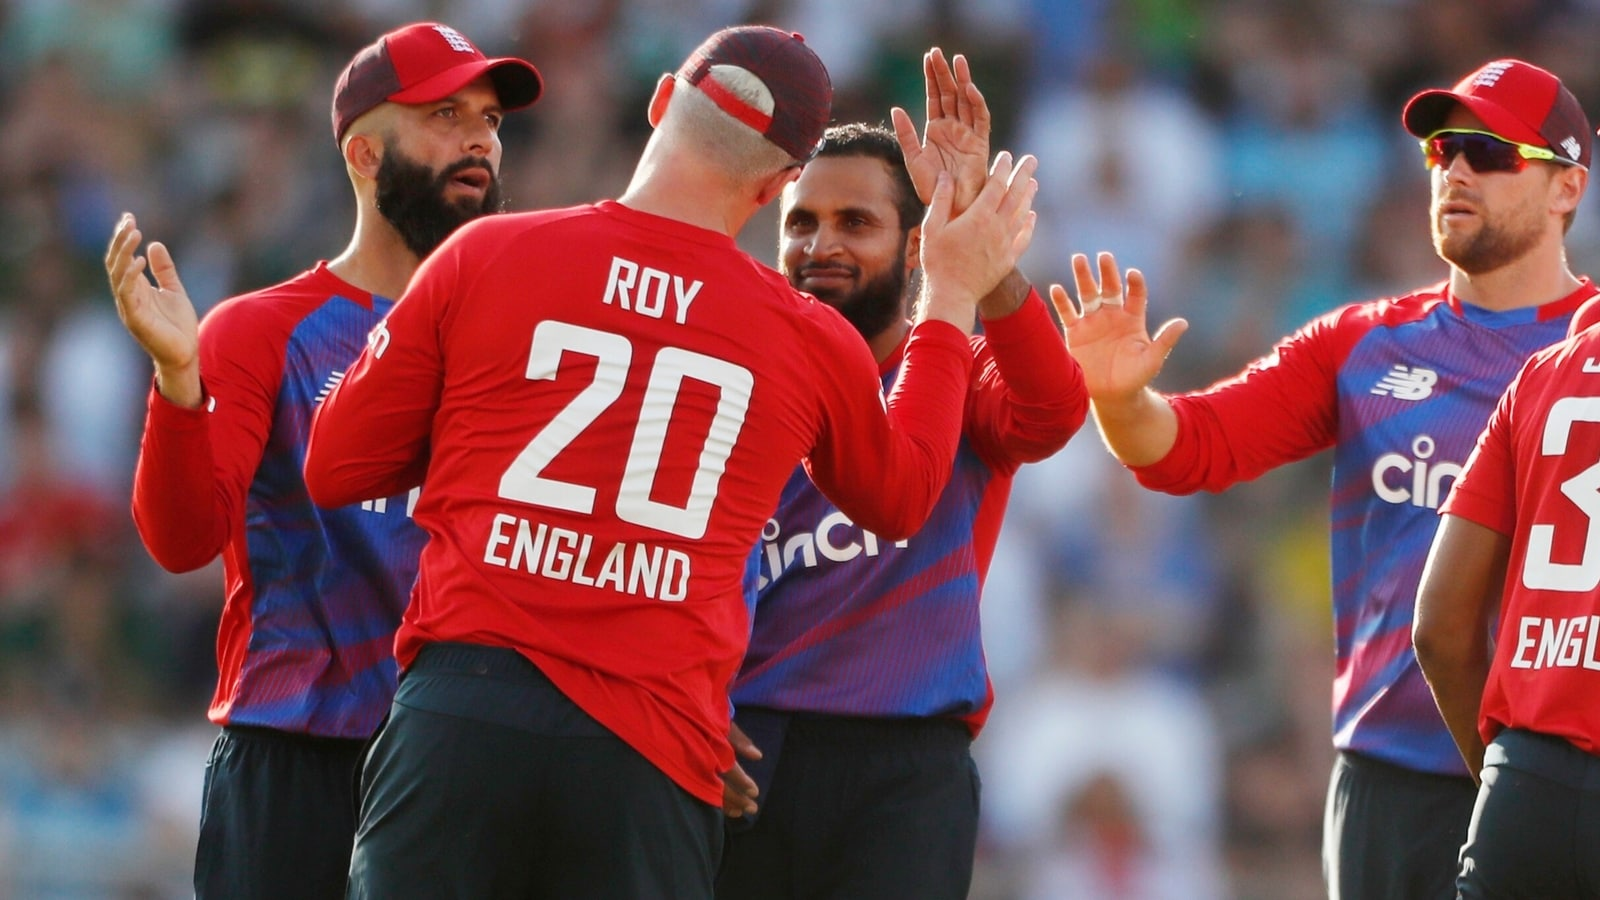 Adil Rashid spins an online, England beat Pakistan by 3 wickets in third T20I, take sequence 2-1